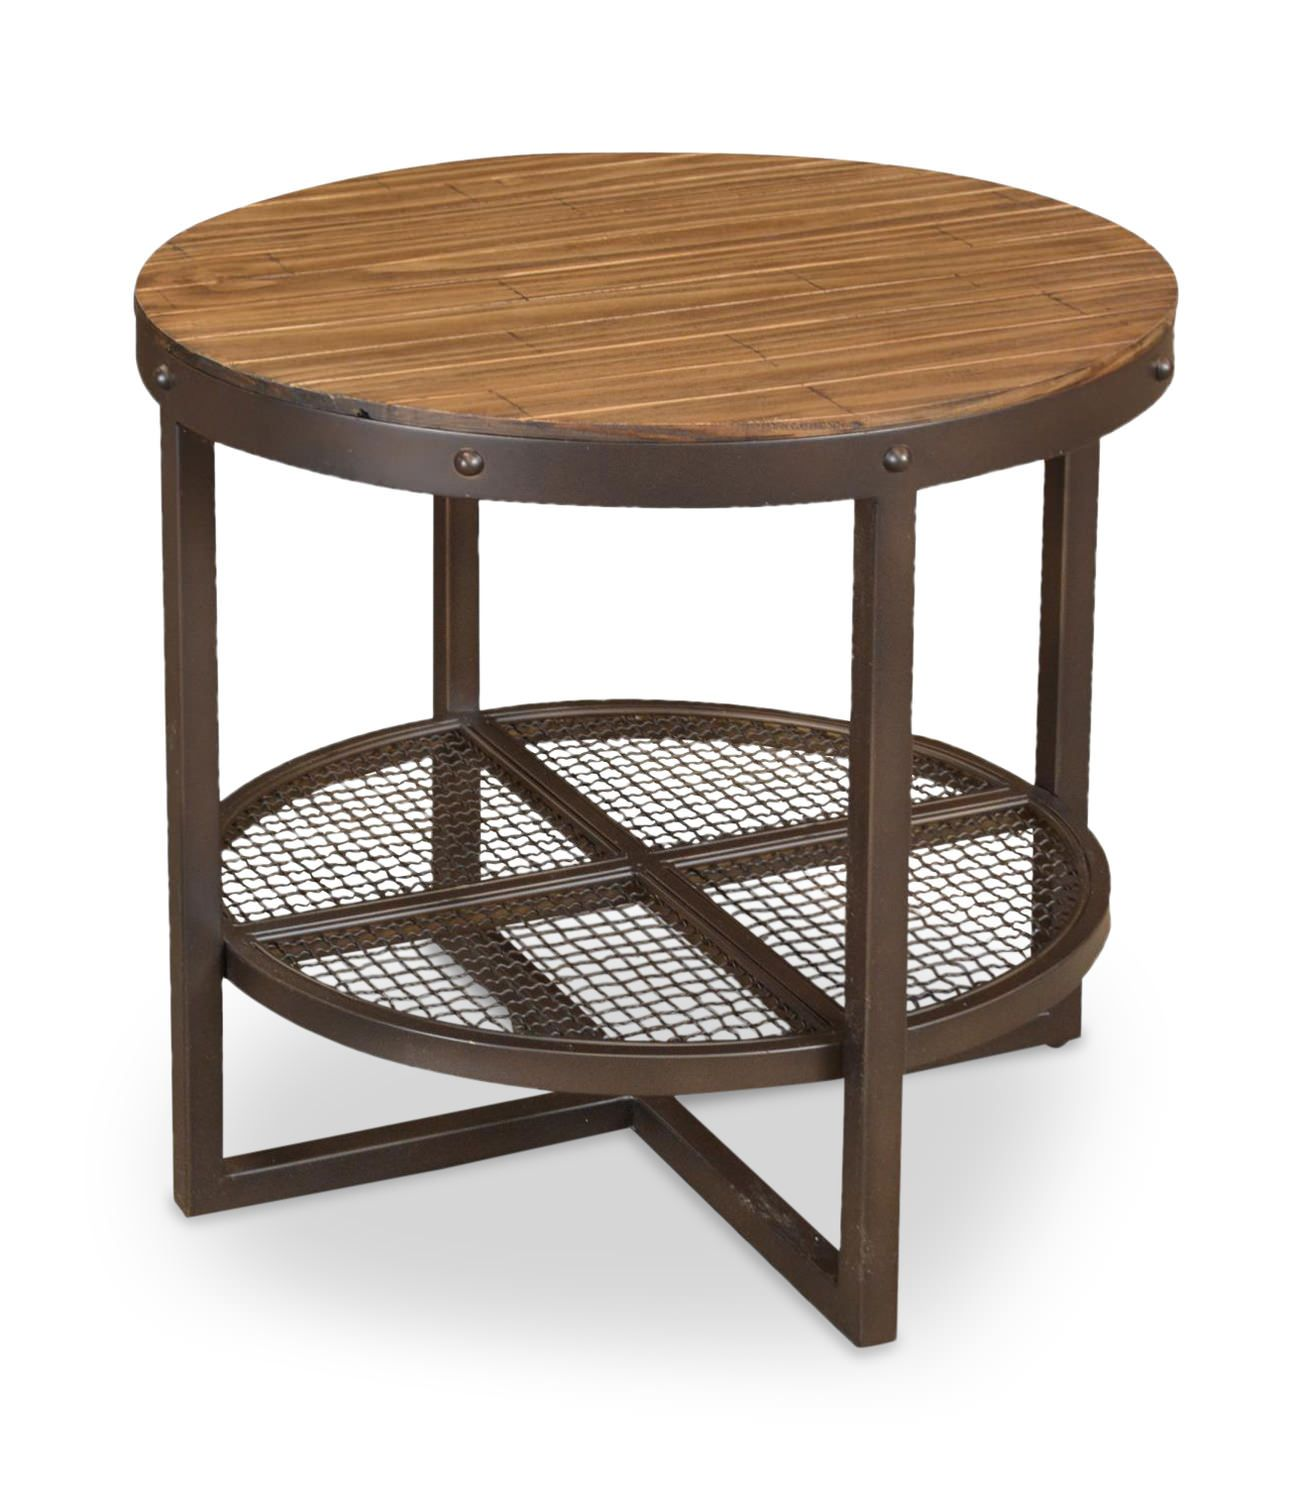 Lakewood Round End Table | HOM Furniture | Furniture Stores In Minneapolis  Minnesota U0026 Midwest